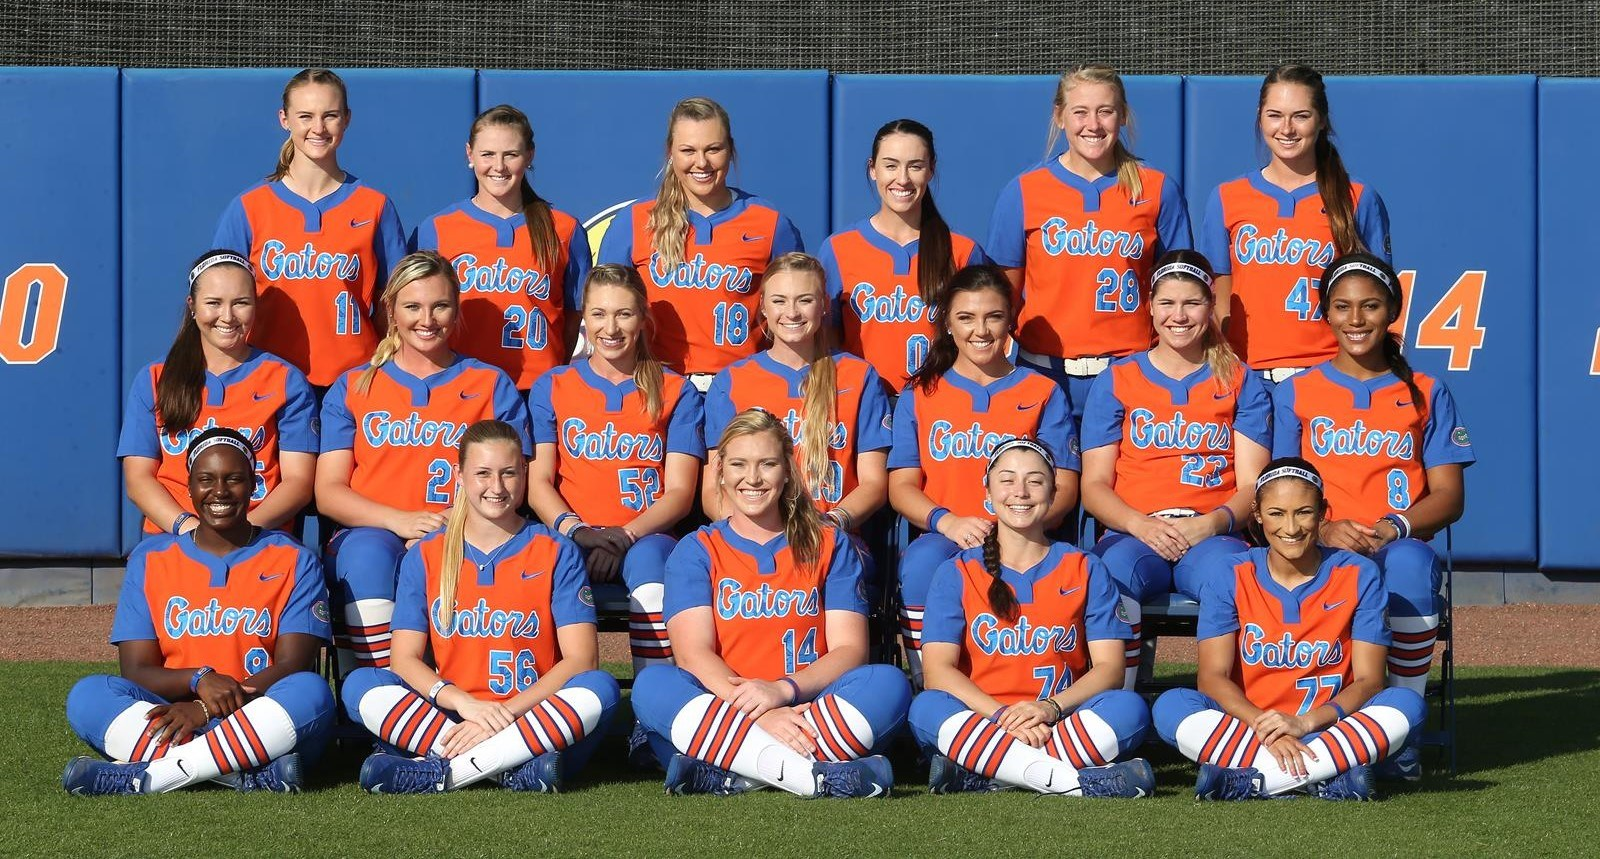 2017 Softball Roster Florida Gators